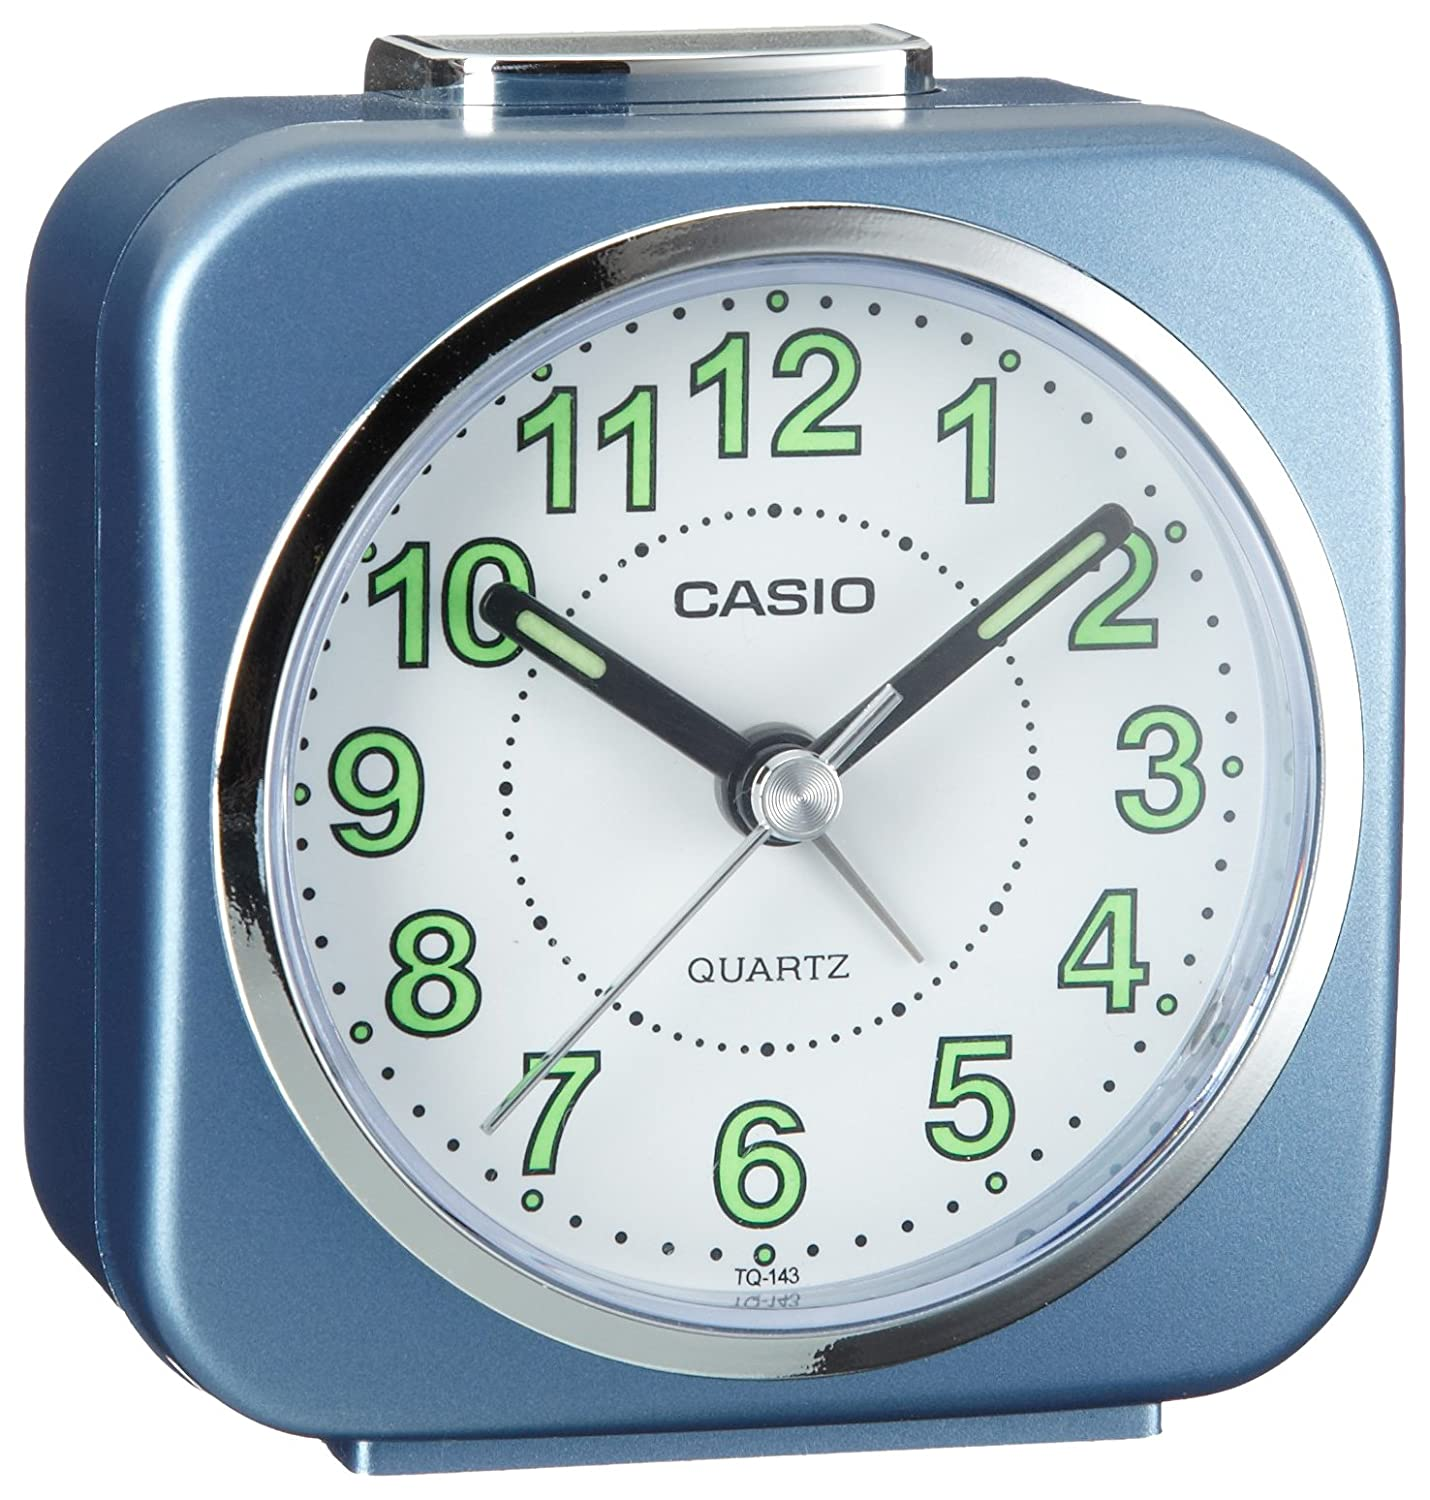 Casio tq143 2 alarm clock with light and snooze blue amazon casio tq143 2 alarm clock with light and snooze blue amazon kitchen home amipublicfo Gallery